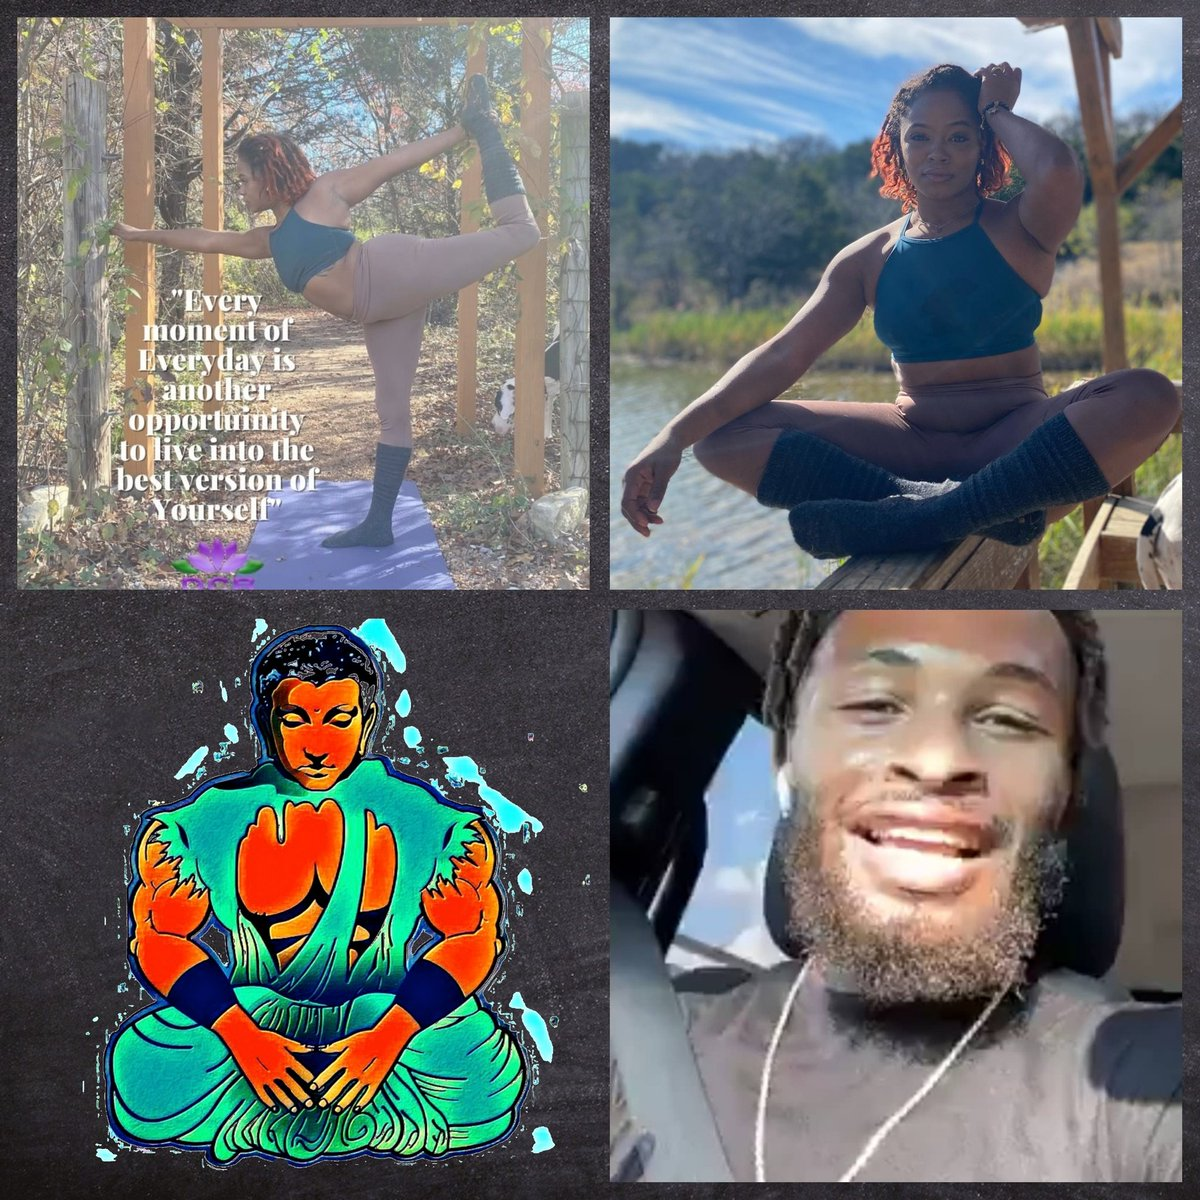 Valentine's Morning Virtual Self Love Workshop with Kbuddah Training & Yogi Diana Celeste. @KBuddahArgue and @DianaBa75525589  $20 or $30 per couple via Zoom. Details on link through FB Events or email Info.etherealjourneycoaching@gmail.com